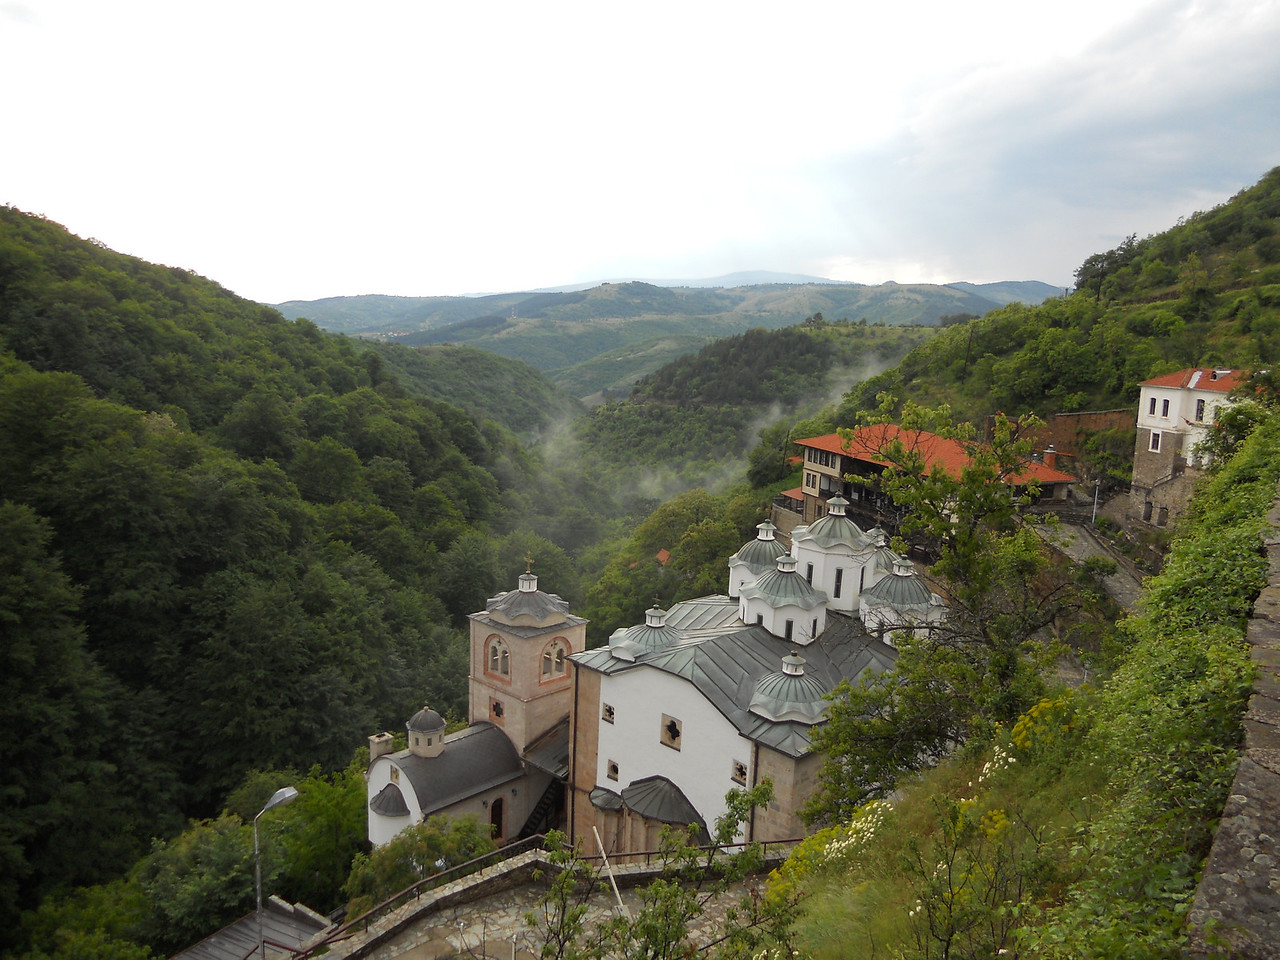 The monestary has a stunning location in the mountains, with atmospheric mist swirling around it.